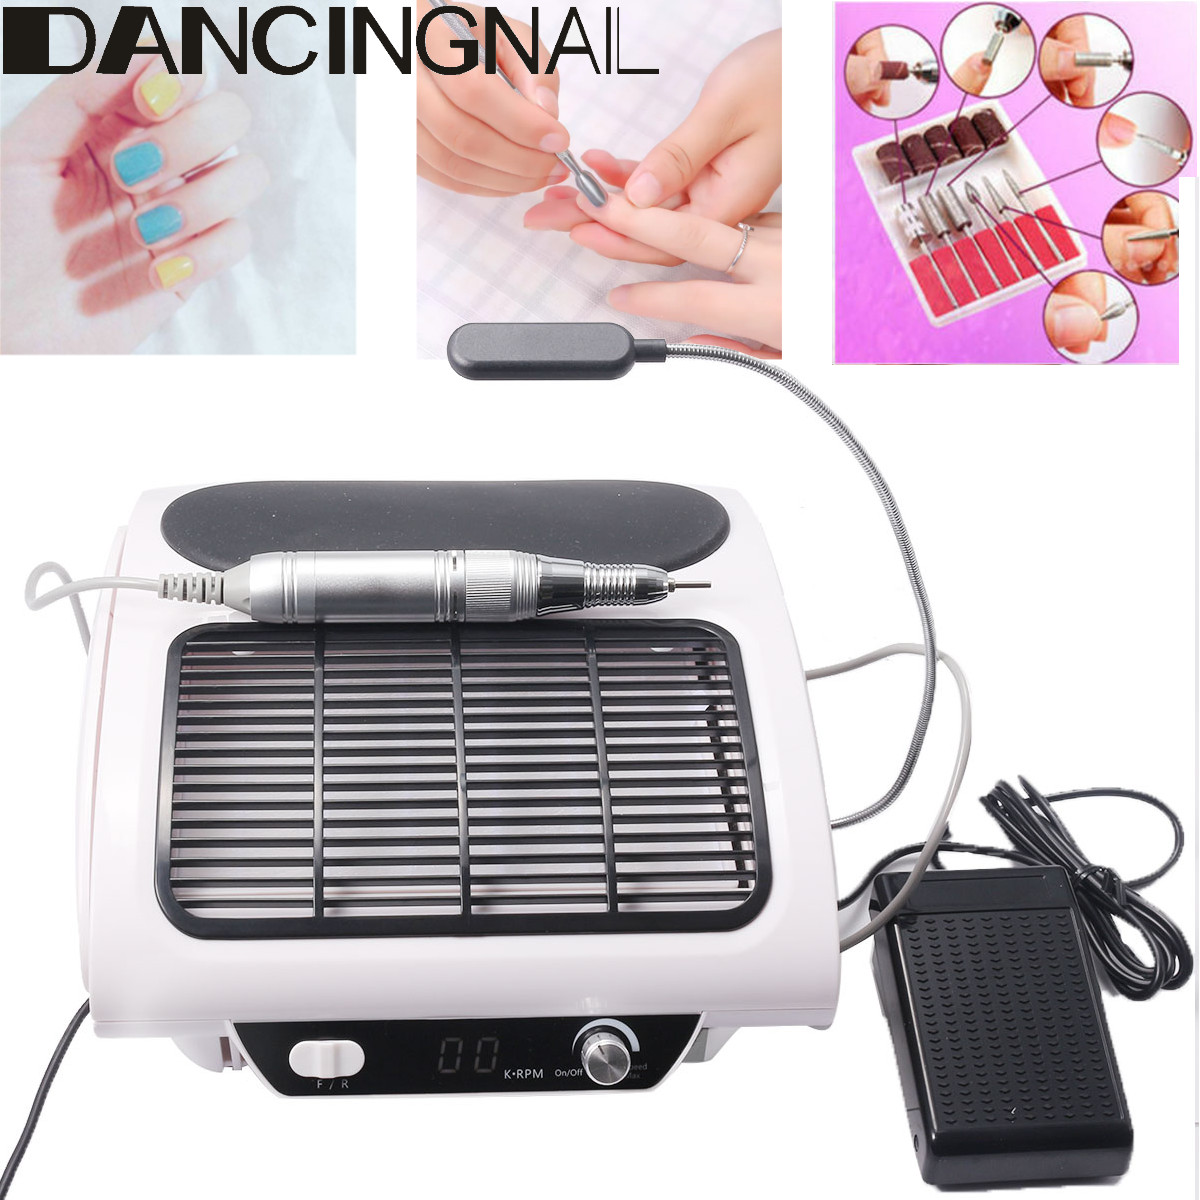 24W Nail Dust Collector Fan Suction Machine Vacuum Cleaner for Manicure Nail Dust Collector Nail Art Salon Equipment 2019 New24W Nail Dust Collector Fan Suction Machine Vacuum Cleaner for Manicure Nail Dust Collector Nail Art Salon Equipment 2019 New